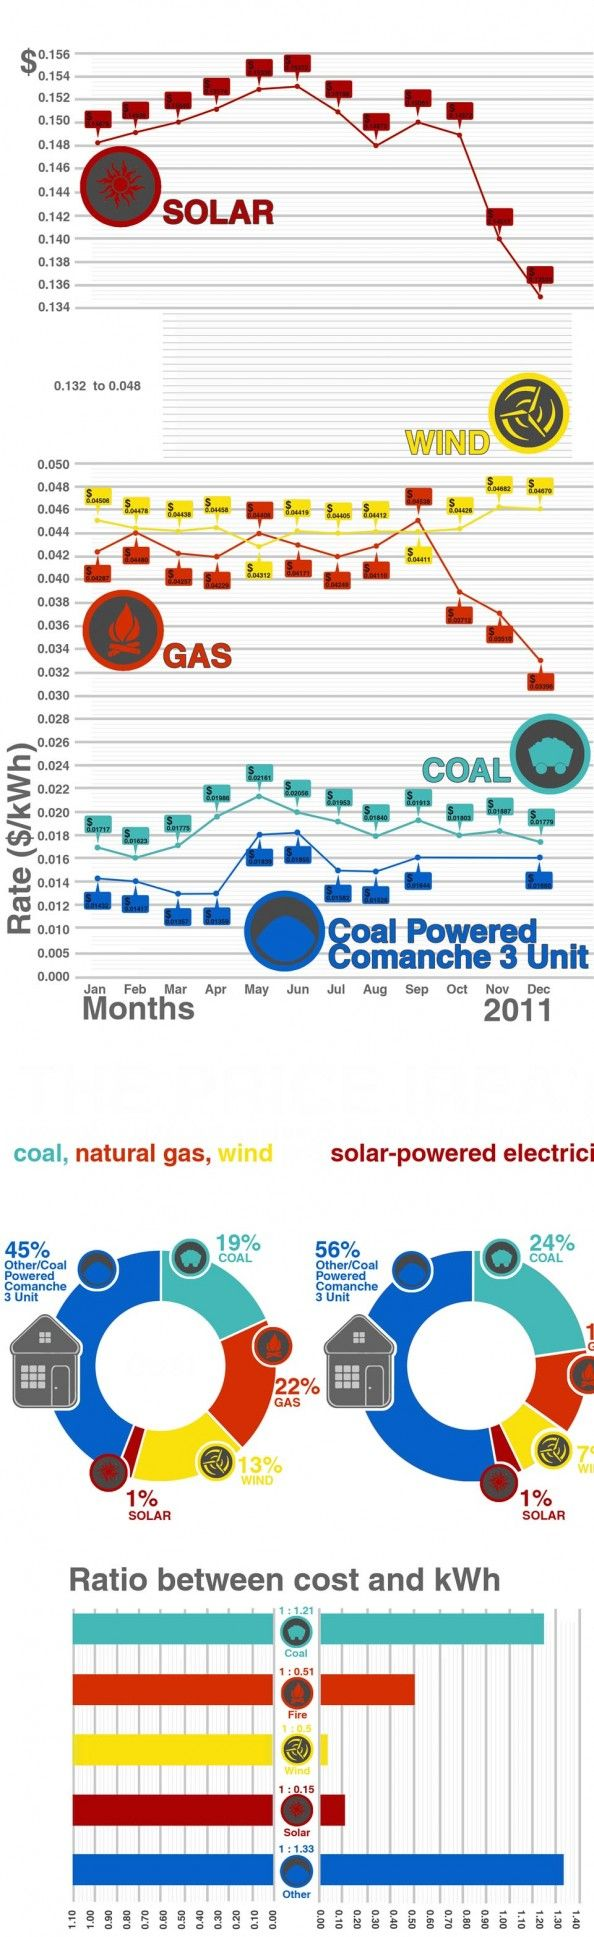 This project is made to show Info graphic on Energy Consumption, showing consumption of solar, wind, gas and coal energy and showing relation between energy costs per kWh Tags - infographic, Data visualization, Mohit, graphics, mglmedia, energy, solar, wind, gas, coal, energy, cost, electricity